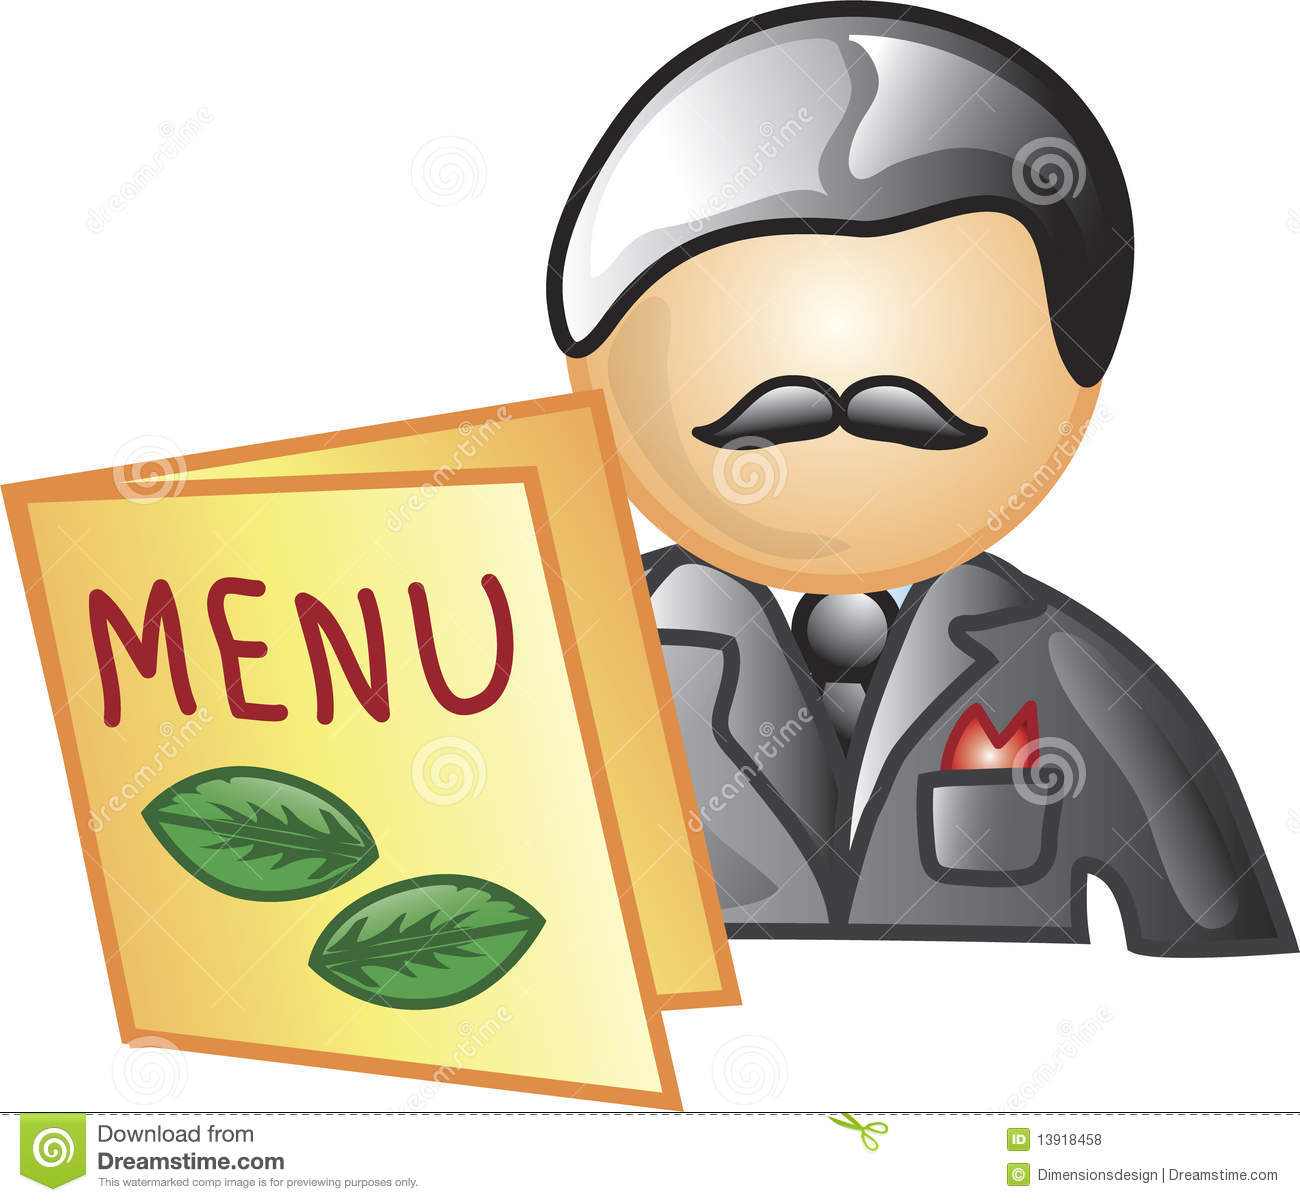 Maitre cartoons illustrations vector stock images 32 for What is a maitre d